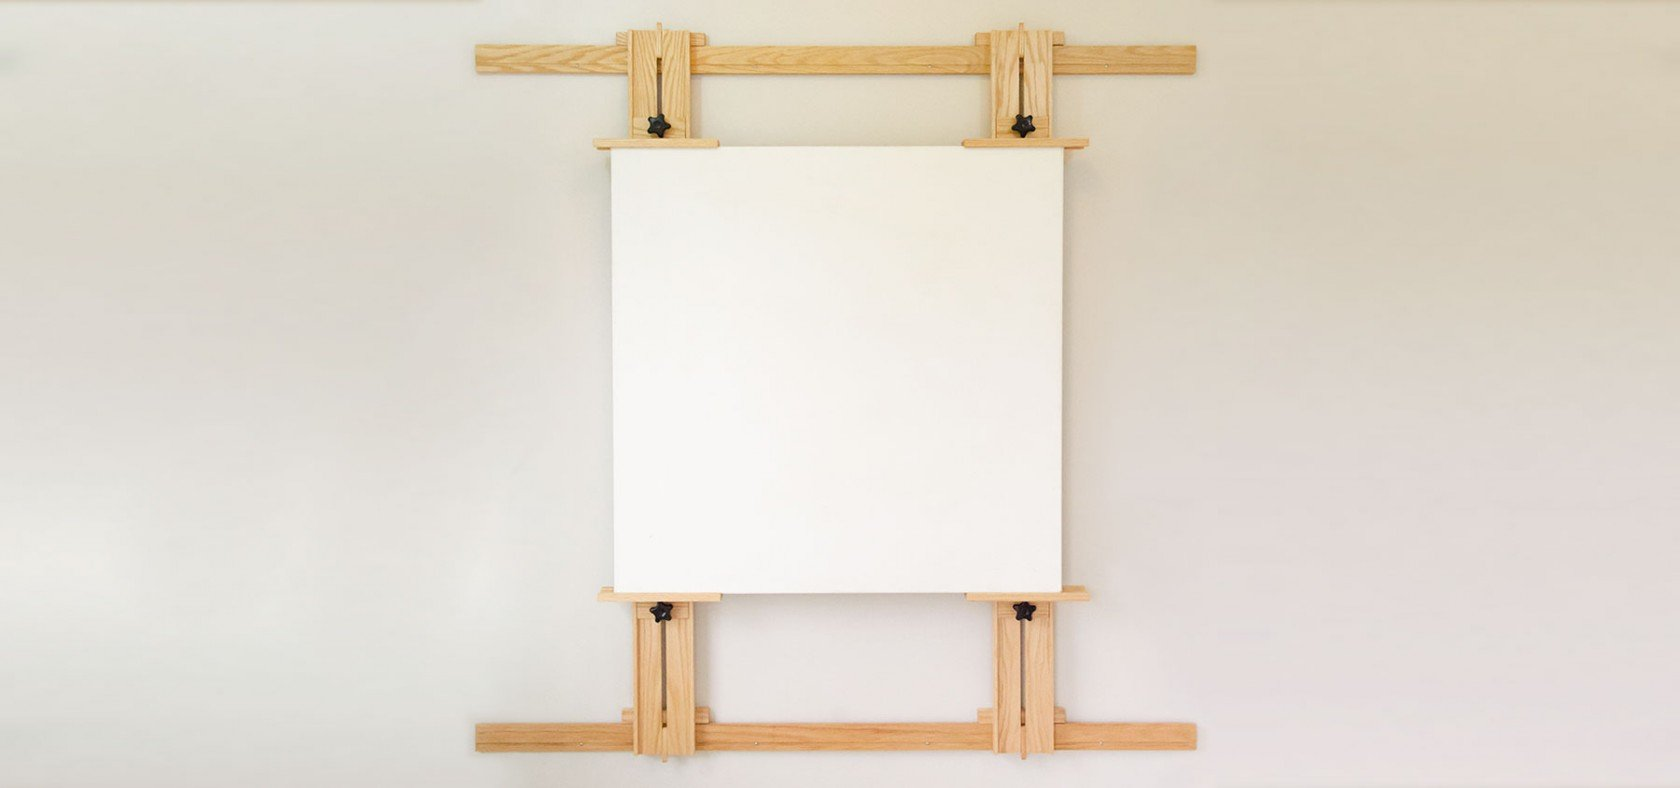 Showcase 66 Inch Wall Easel with Canvas